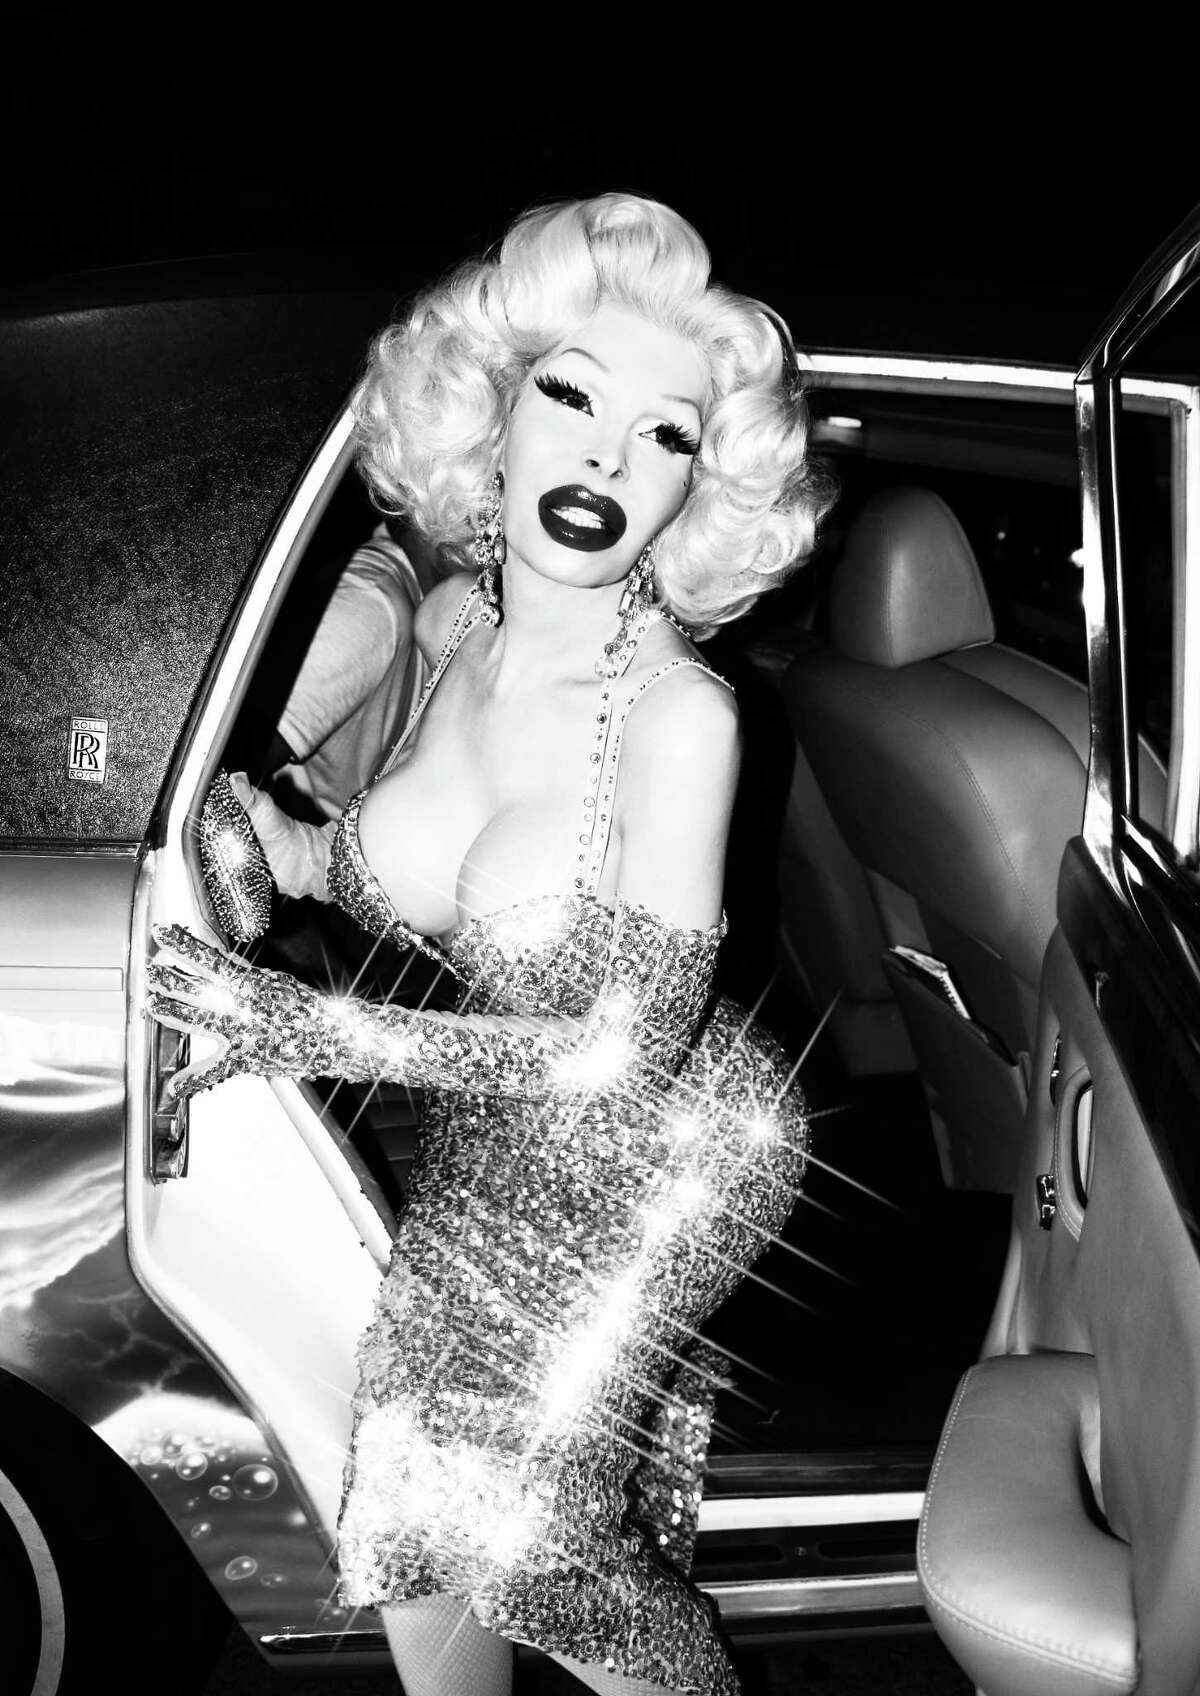 Amanda Lepore is known as